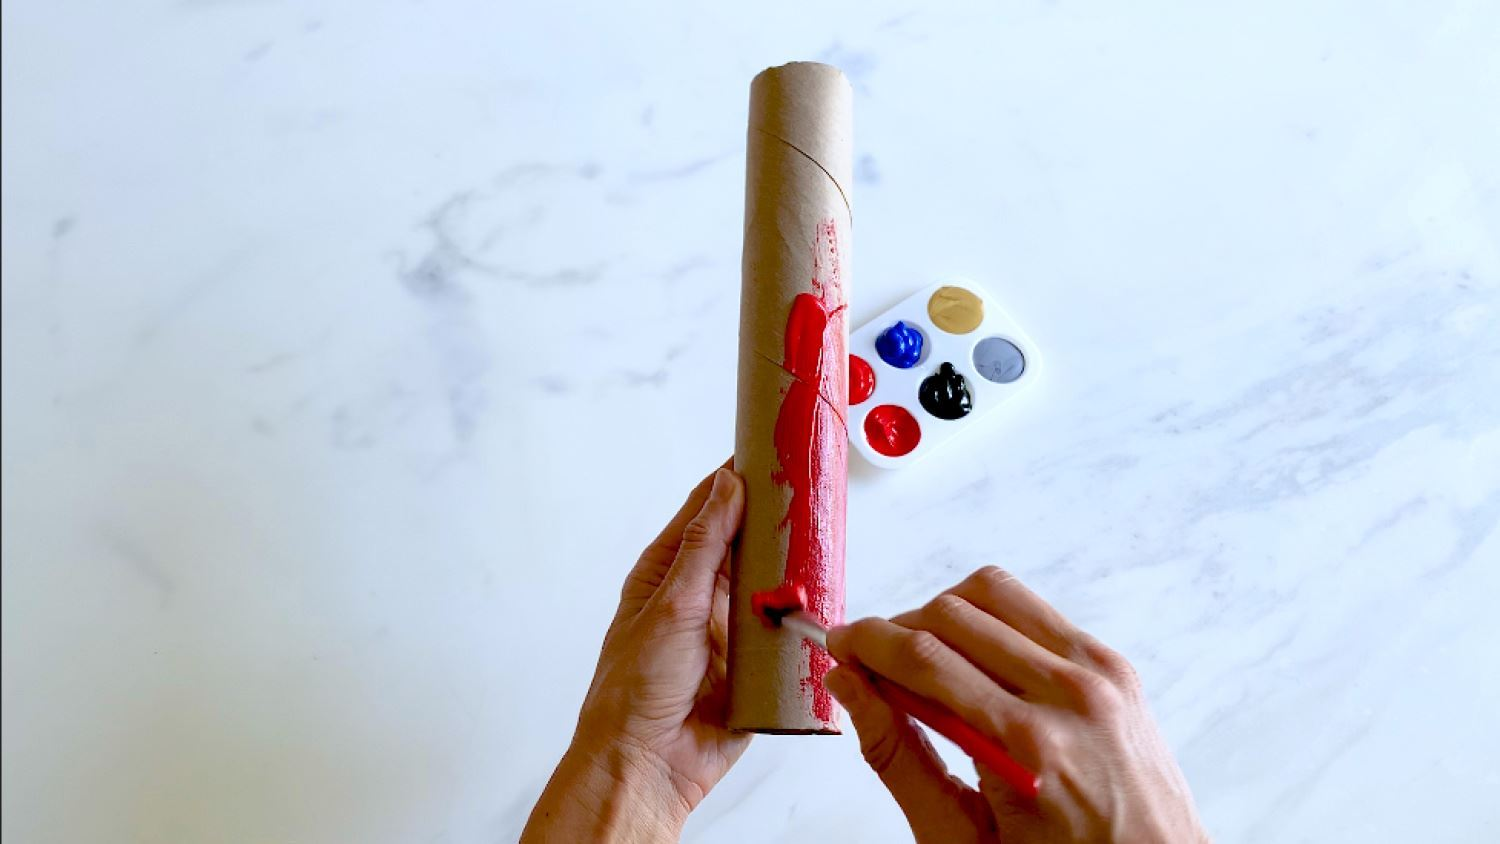 Paint one of the paper towel tubes